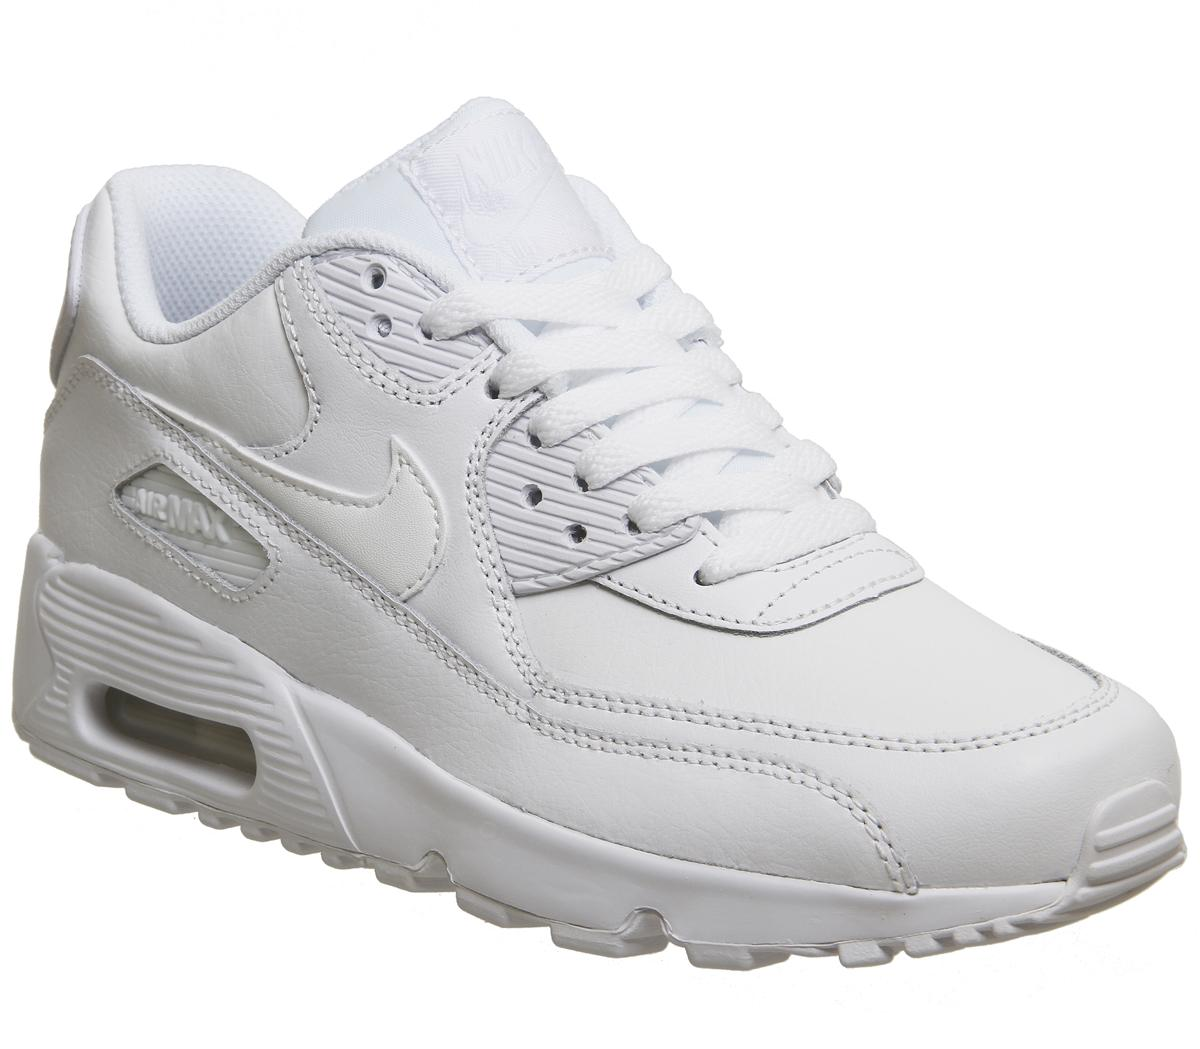 tifón etiqueta Noreste  Nike Air Max 90 Trainers White Mono Leather - Hers trainers